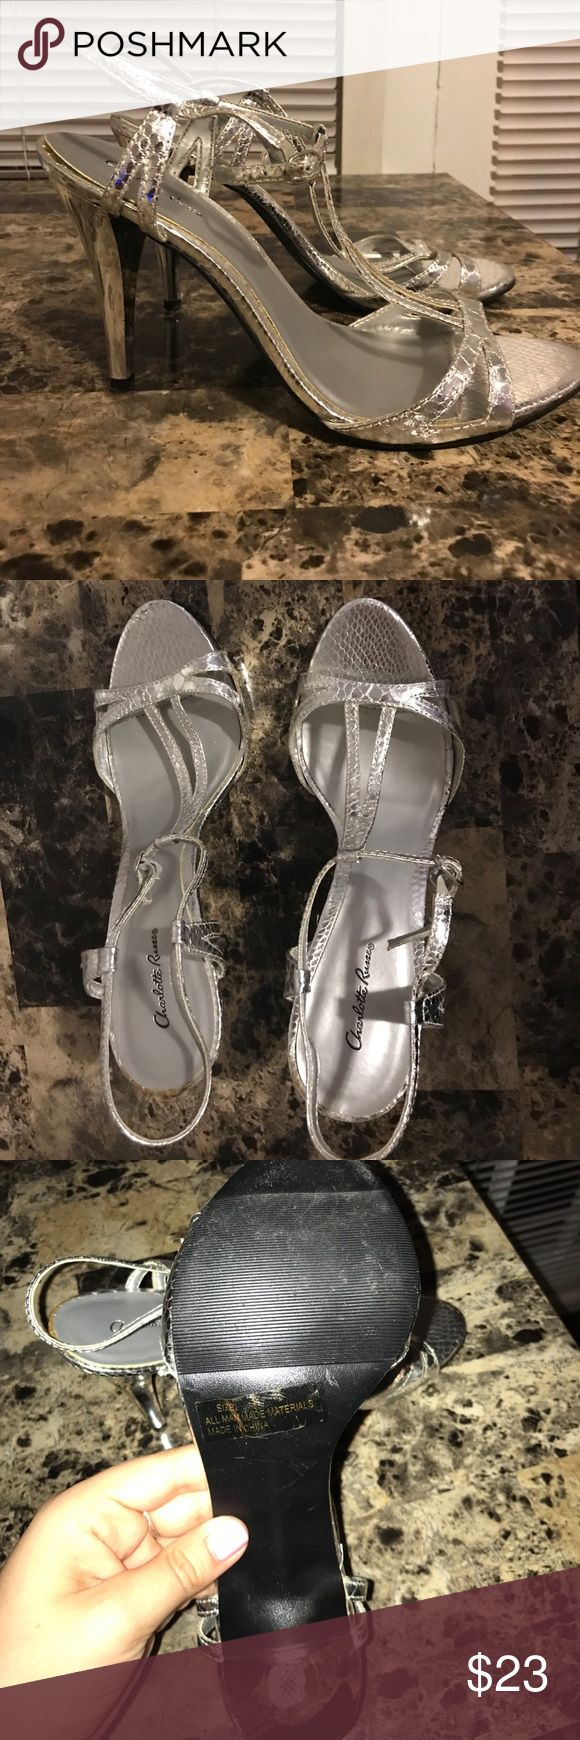 Charlottes Russe heels Silver Charlotte Russe heels. Never been worn! The lining of the heel part is starting to lift a little just from sitting in a closet for so long. In good condition! Charlotte Russe Shoes Heels